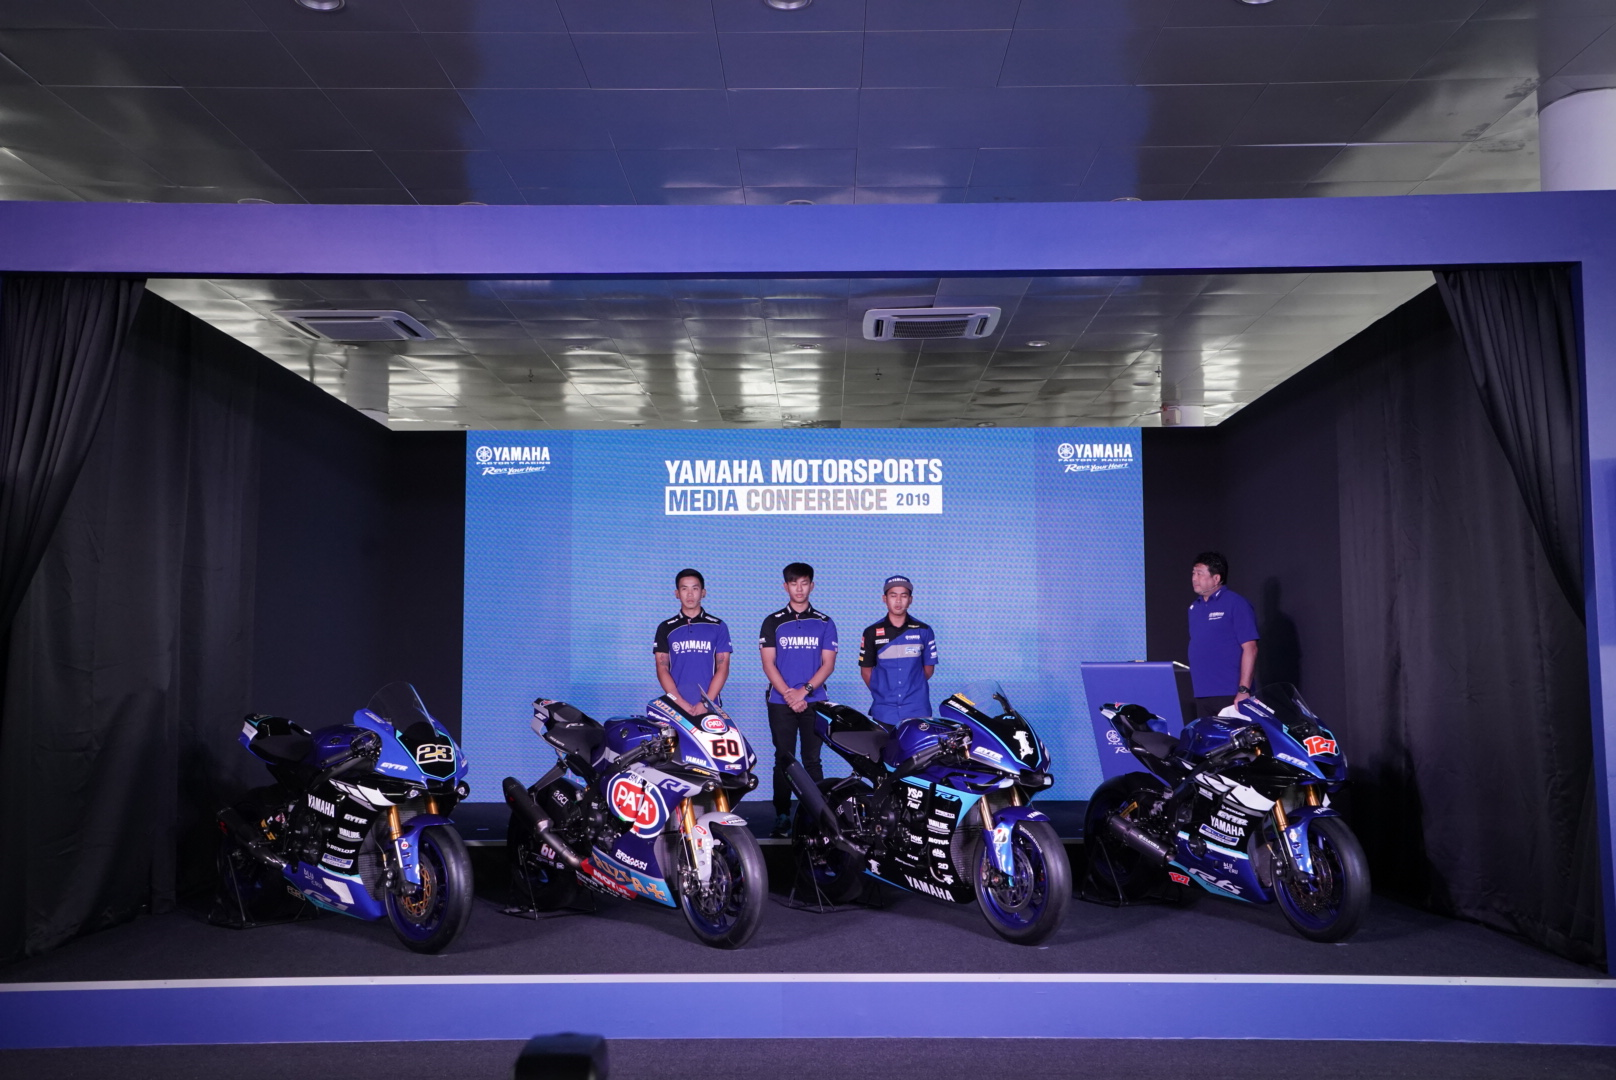 YAMAHA MOTORSPORT MEDIA CONFERENCE 2019